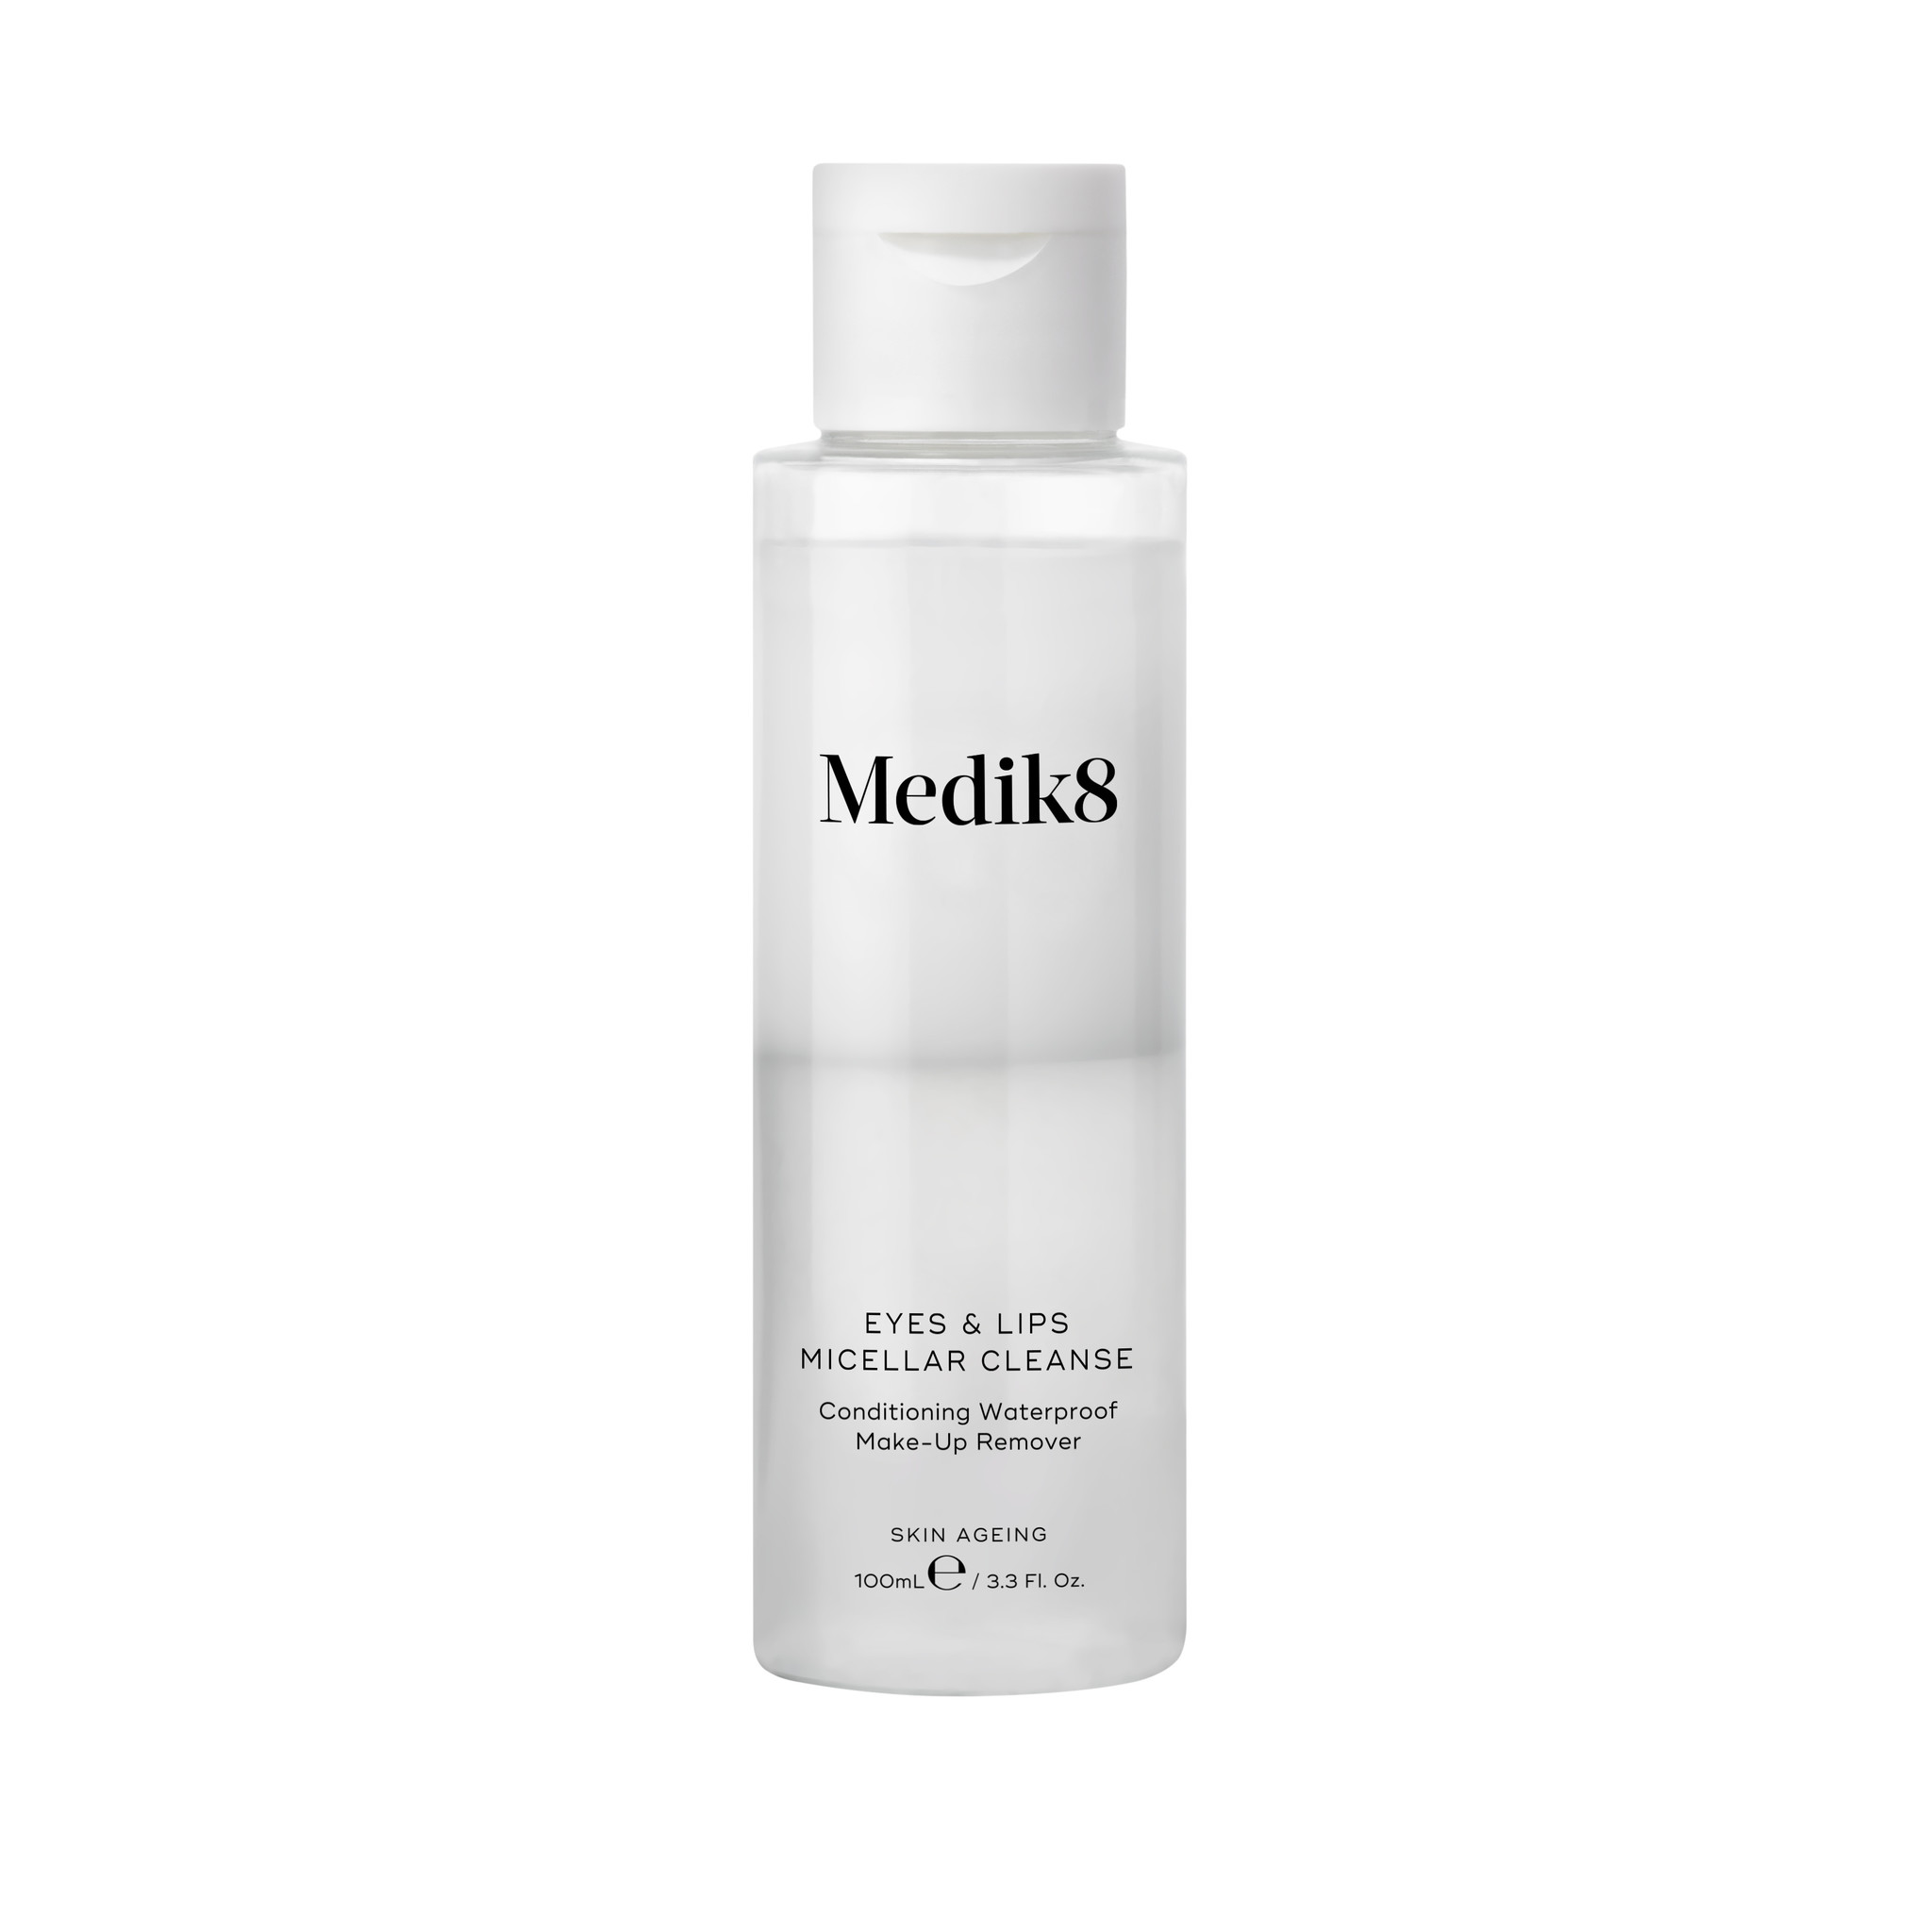 Medik8 Conditioning Waterproof Make-Up Remover